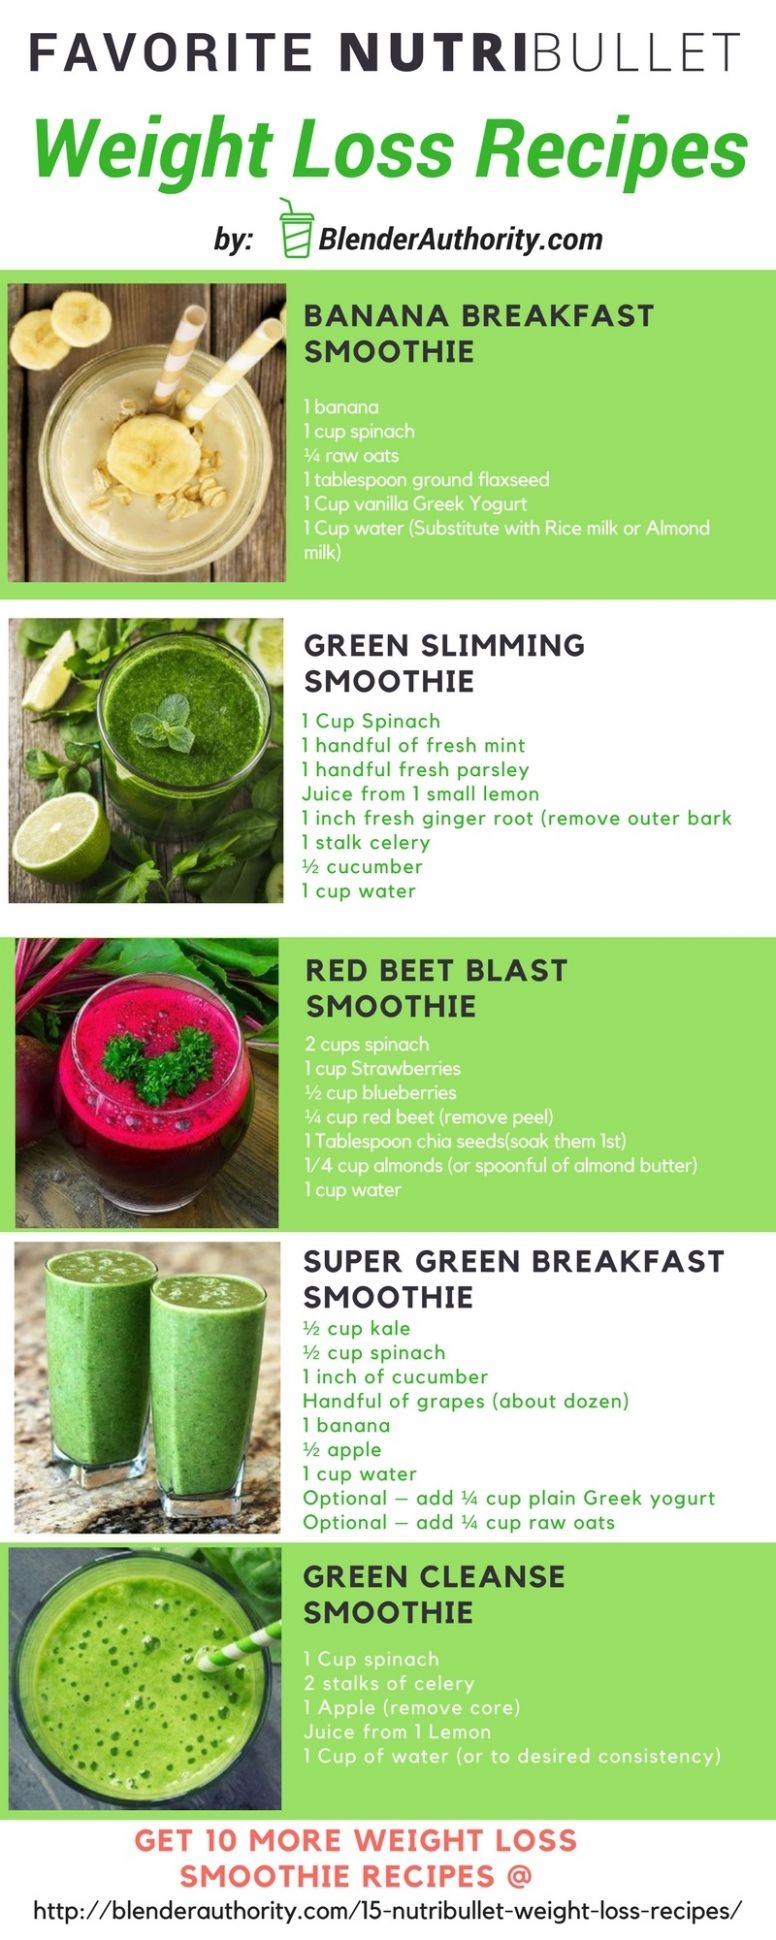 10 Nutribullet Weight Loss Recipes - Smoothie Recipes For Weight Loss And Energy